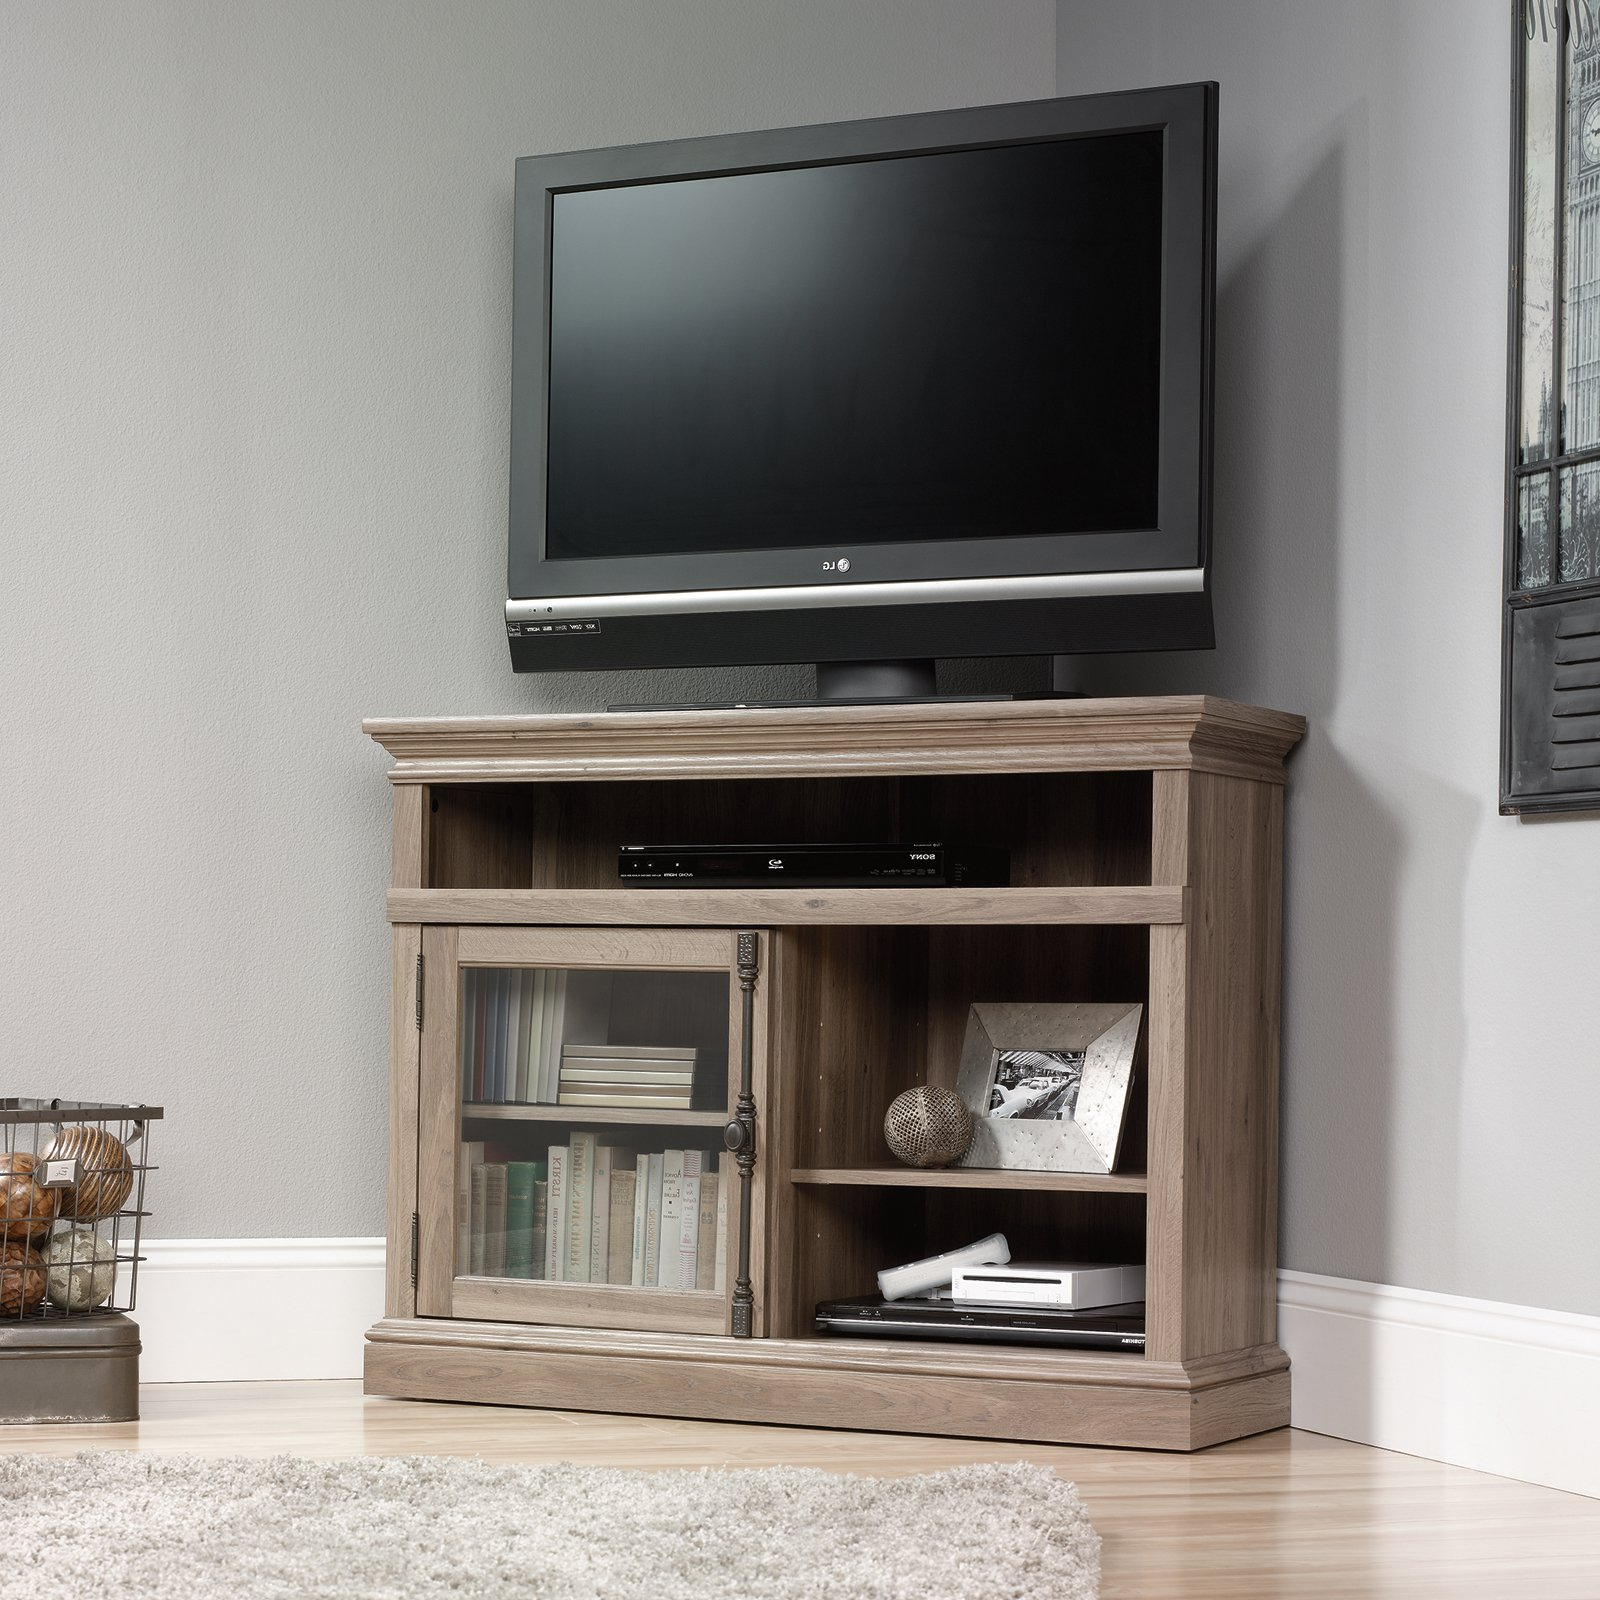 Corner Oak Tv Stands For Flat Screen Within 2018 Tall Corner Tv Stand Amazing Sauder 42 In Barrister Lane Tv Salt Oak (View 7 of 20)